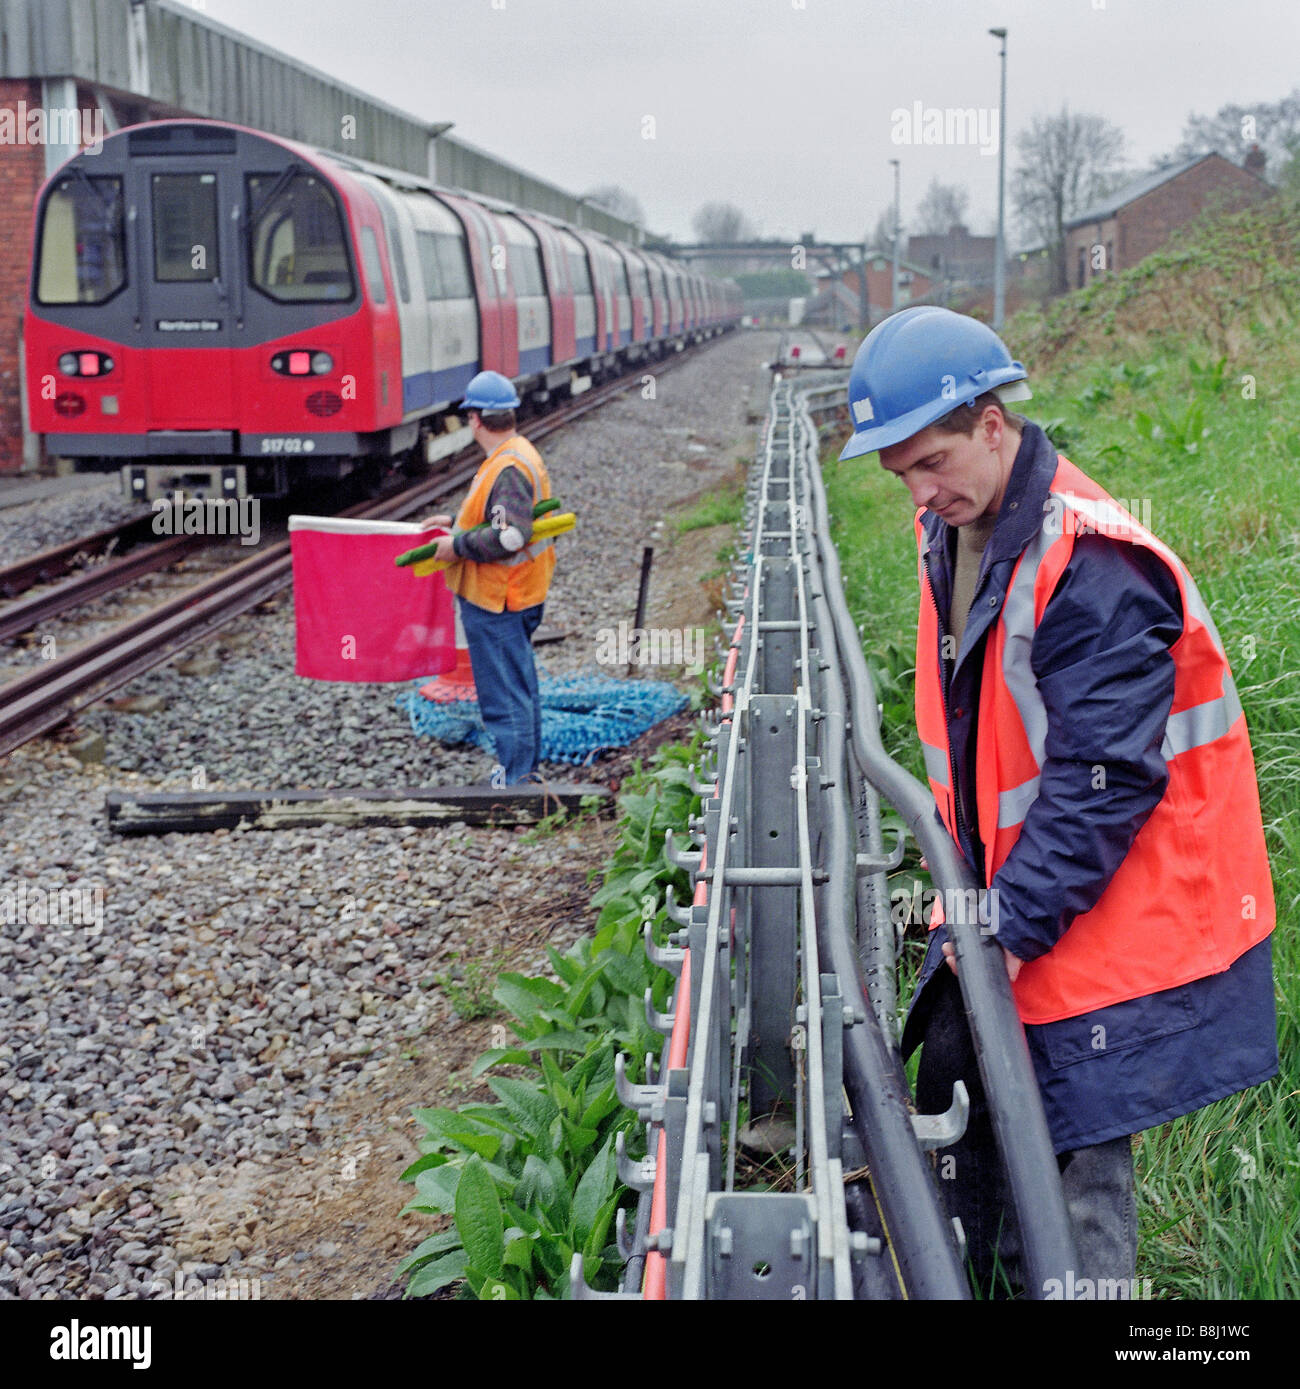 Engineer replacing power cable whilst a look-out holds a red